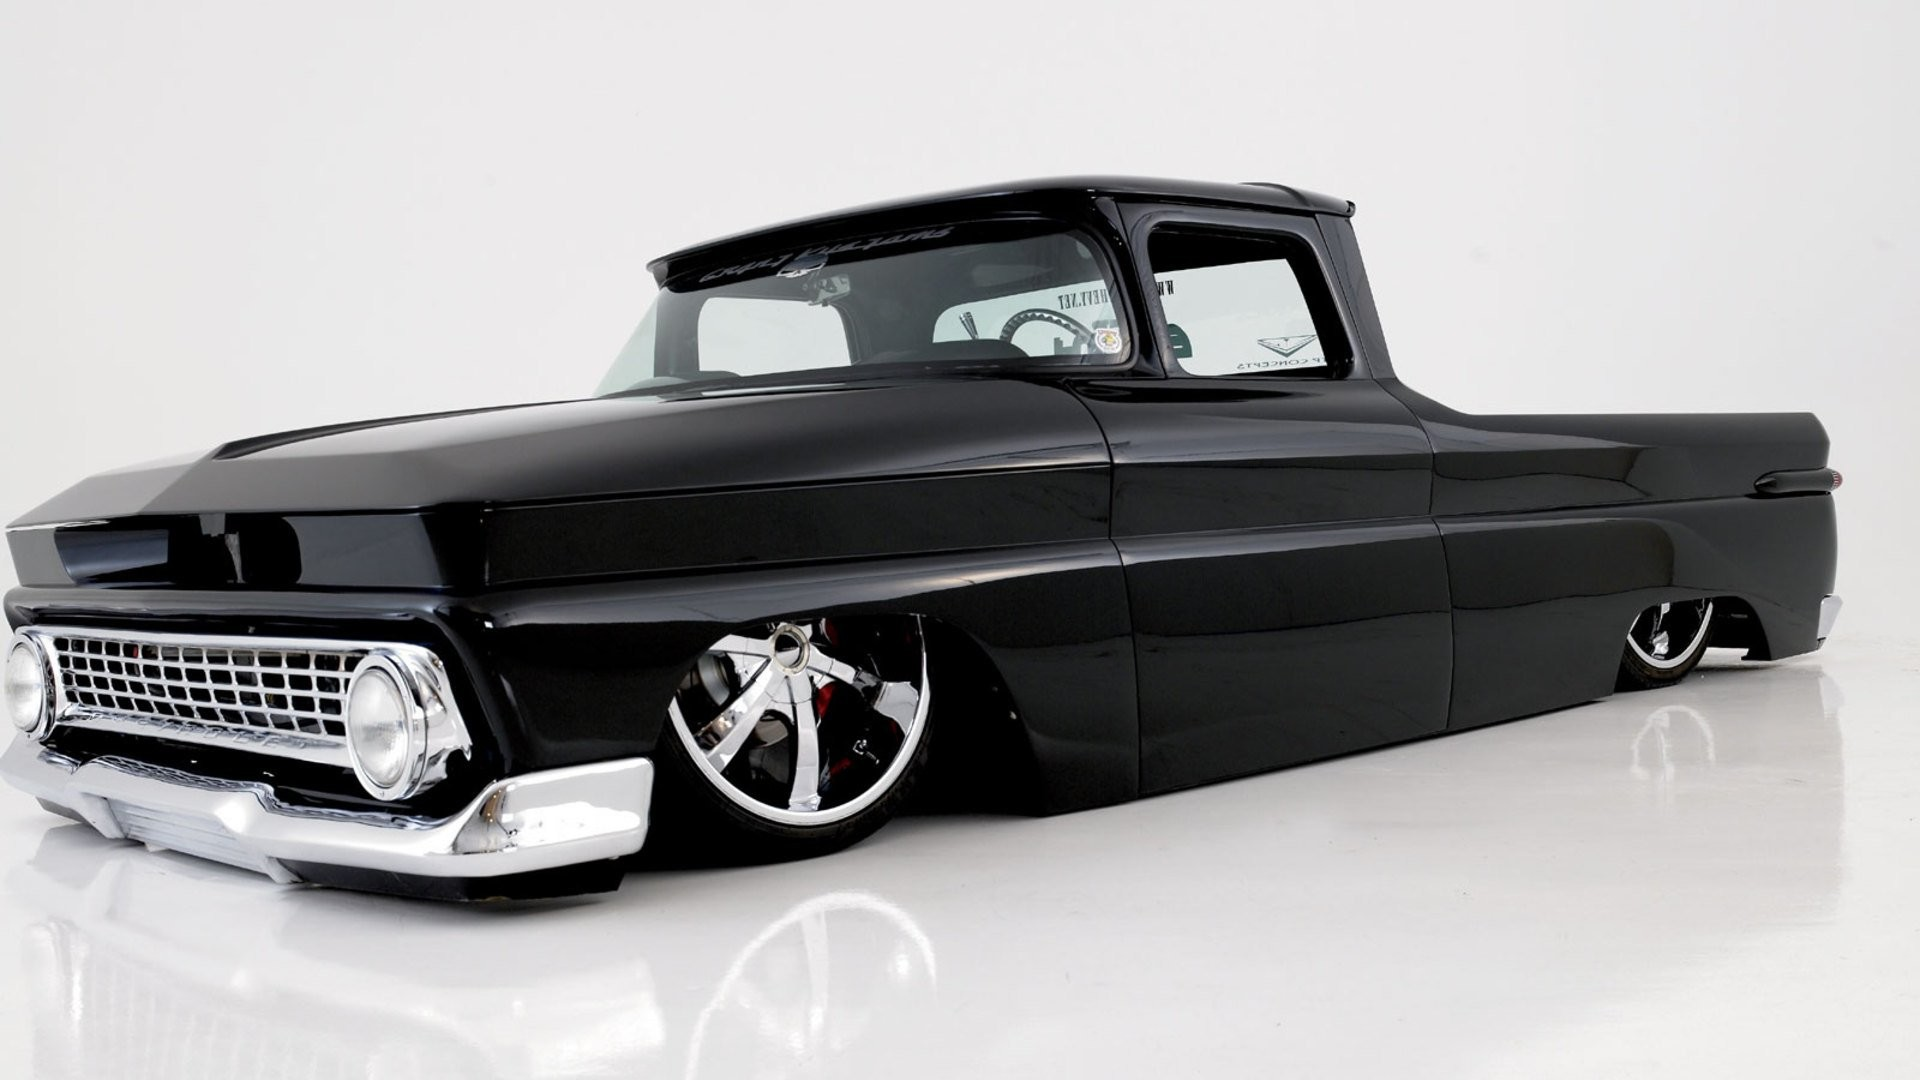 Res: 1920x1080, Vehicles - Lowrider Wallpaper